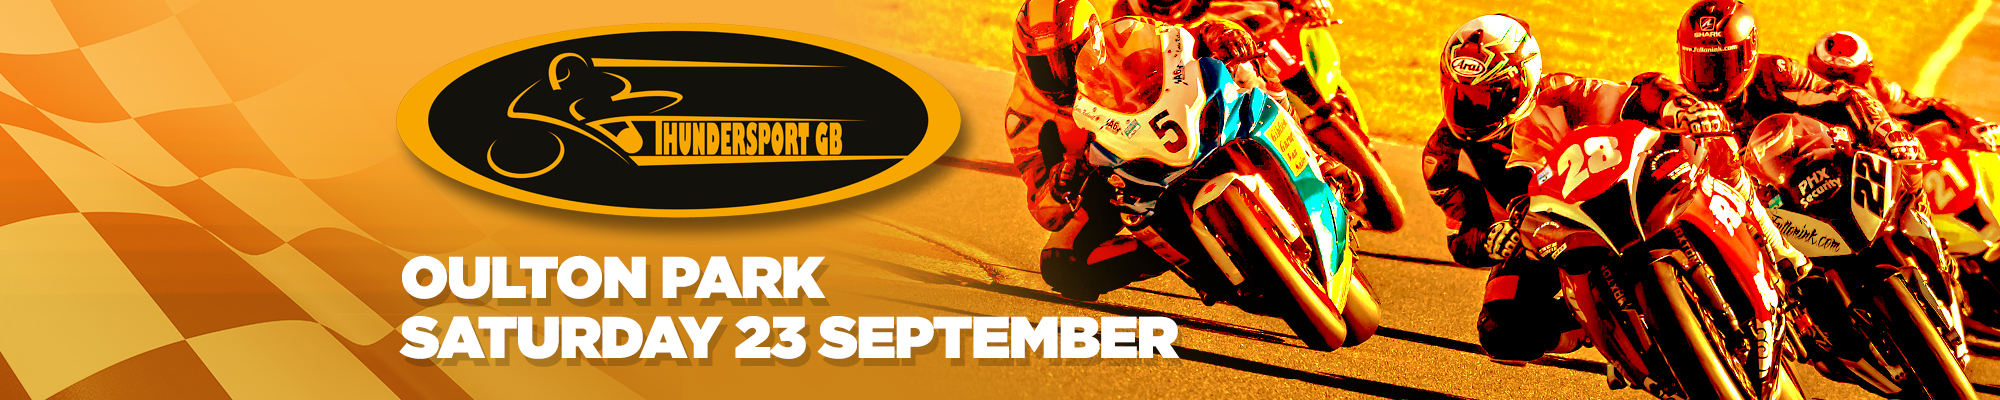 Thundersport GB Club Bike Championships